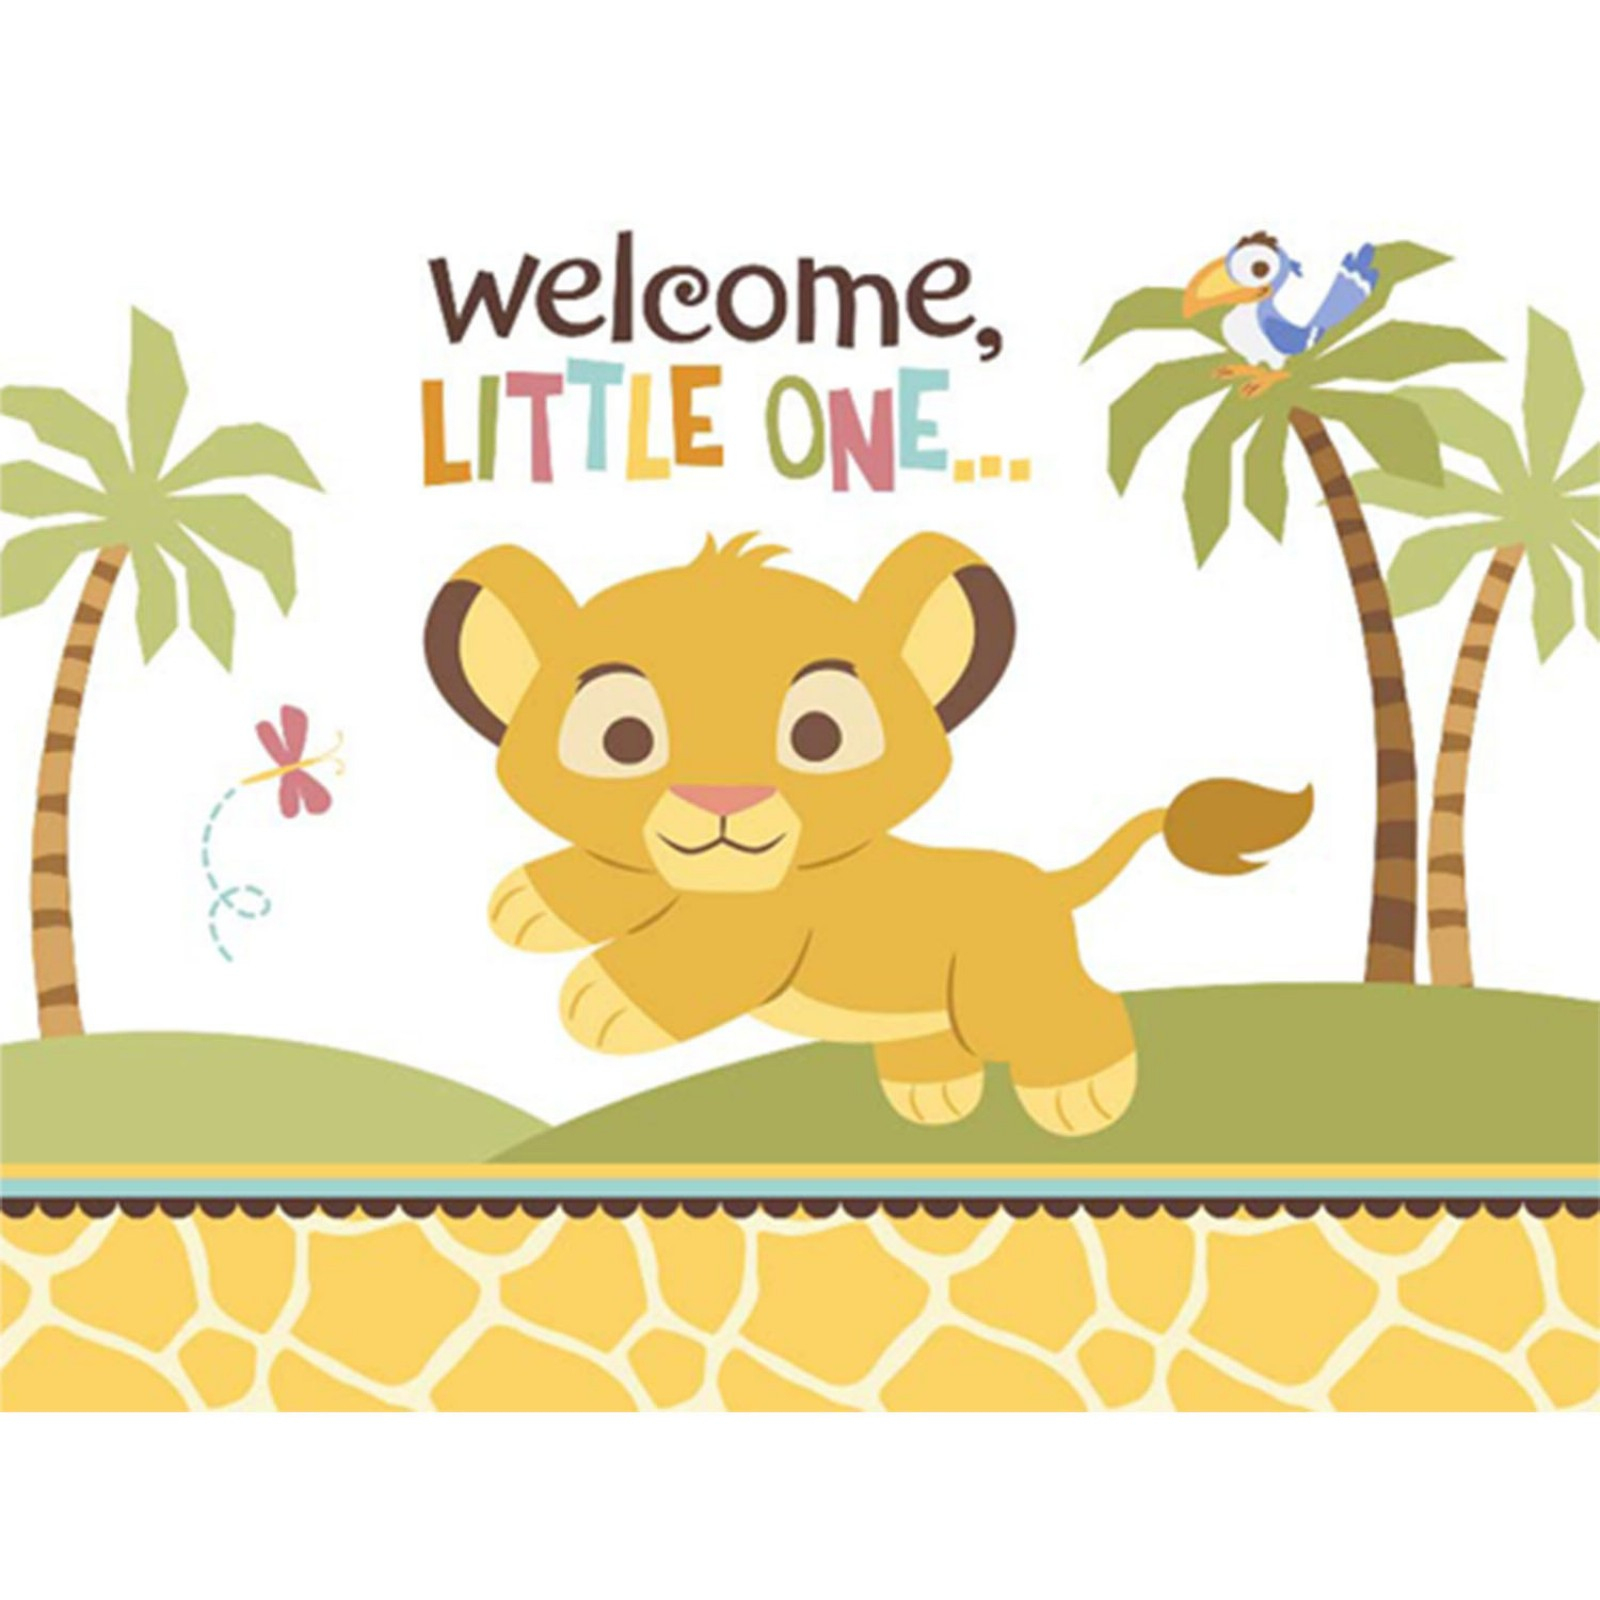 9 Free Lion King Baby Shower Invitations | Kittybabylove - Free Printable Lion King Baby Shower Invitations